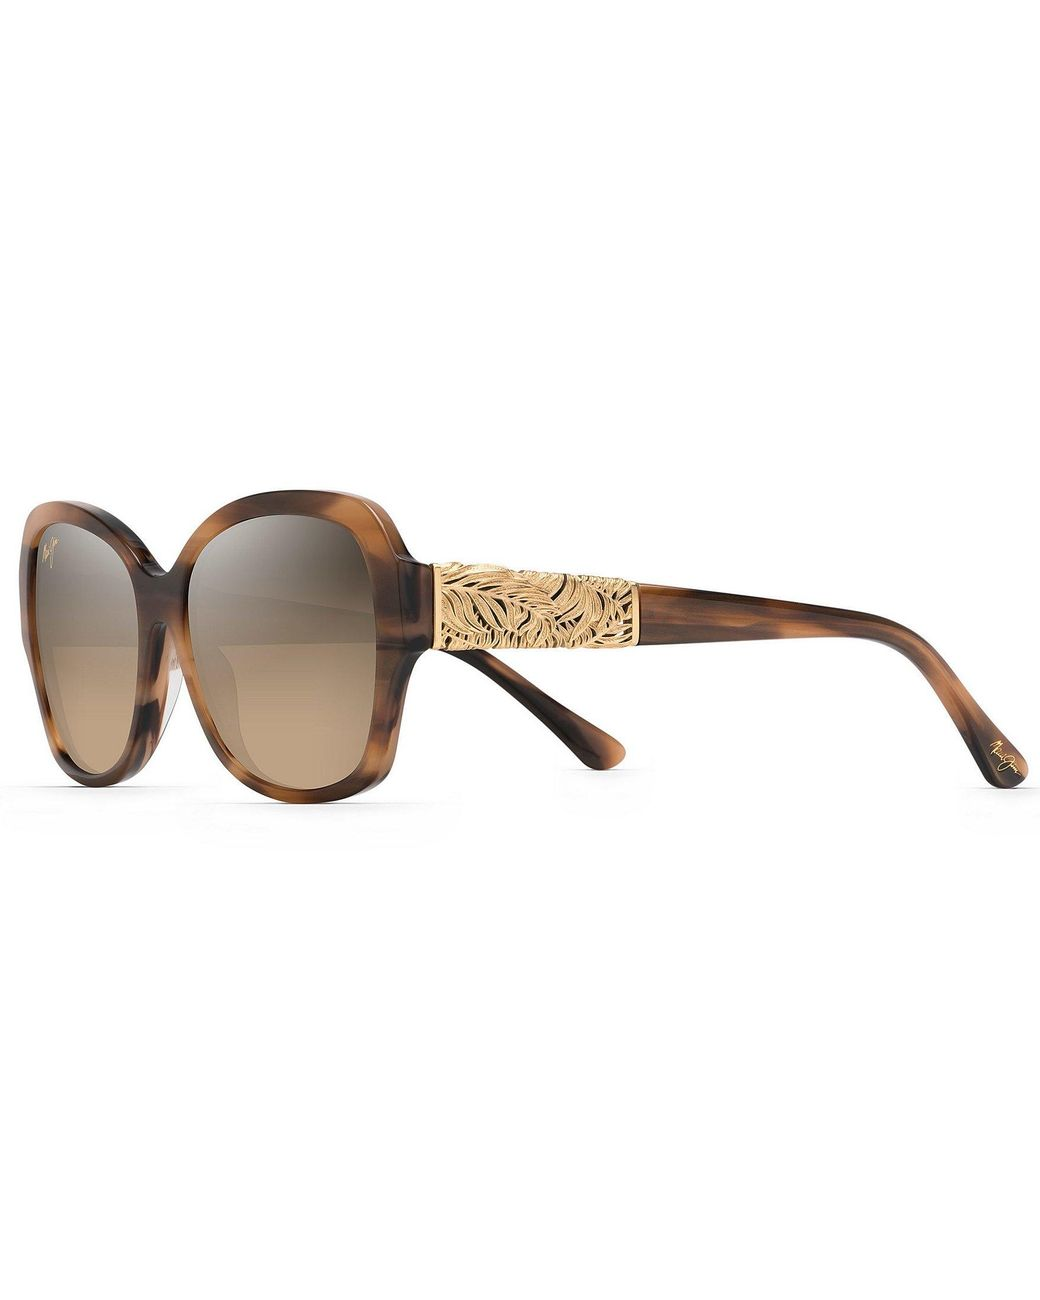 8be94c6519bb Lyst - Maui Jim Swaying Palms Polarized Fashion Sunglasses in Brown